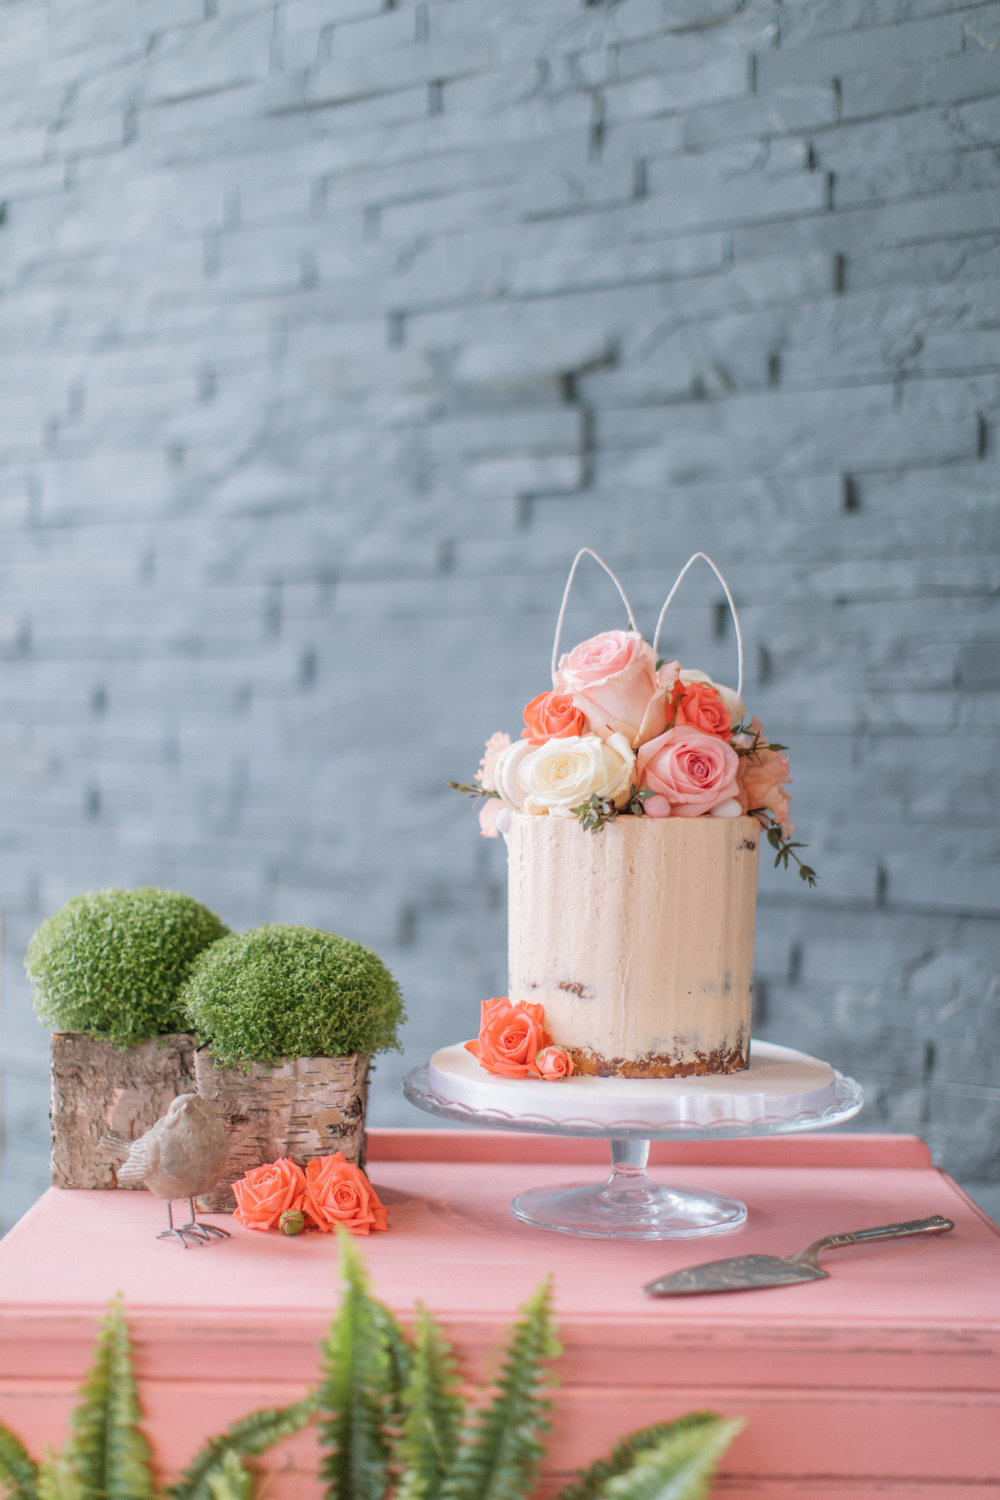 EASTER STYLED SHOOT | MAR 2018